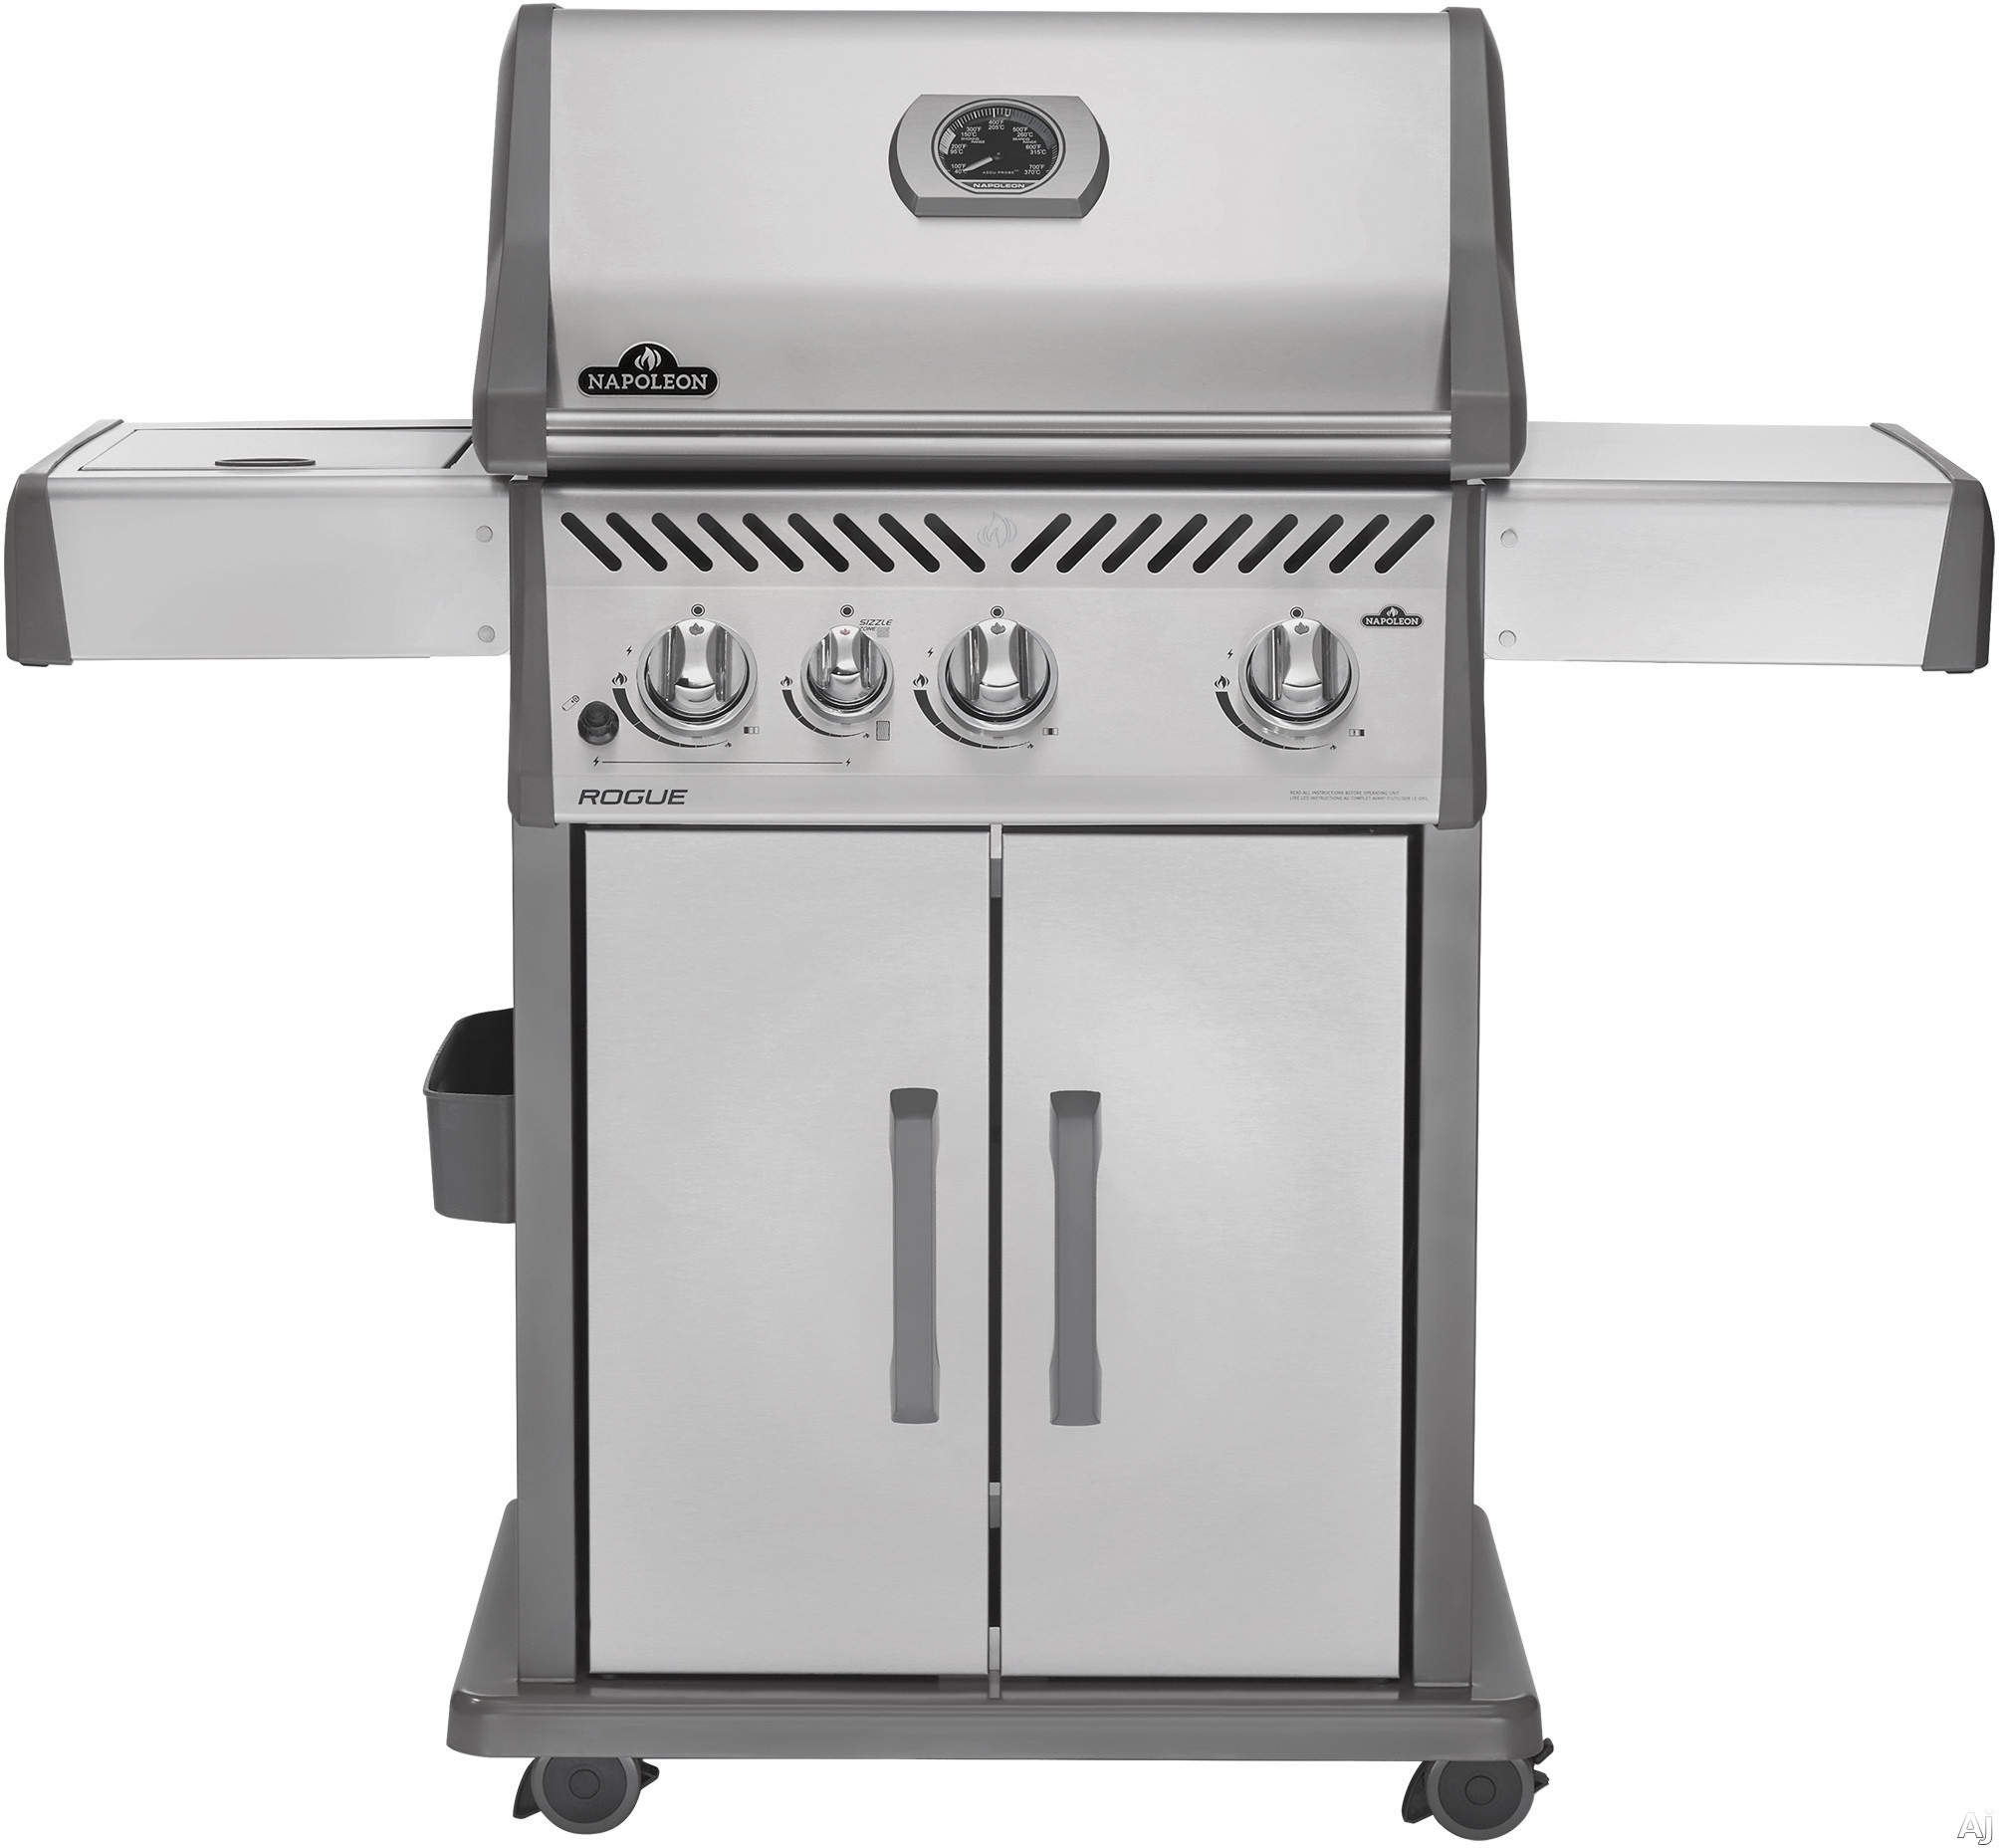 Image of Napoleon Rogue Series R425SIB 32 Inch Gas Grill with 3 12,000 BTU Stainless Steel Tube Burners, 9,000 BTU Infrared SIZZLE ZONE Side Burner, JETFIRE Ignition, Steel Cart, 625 sq. in. Total Area, WAVE Stainless Steel Grid, Chrome Warming Rack and Stainless